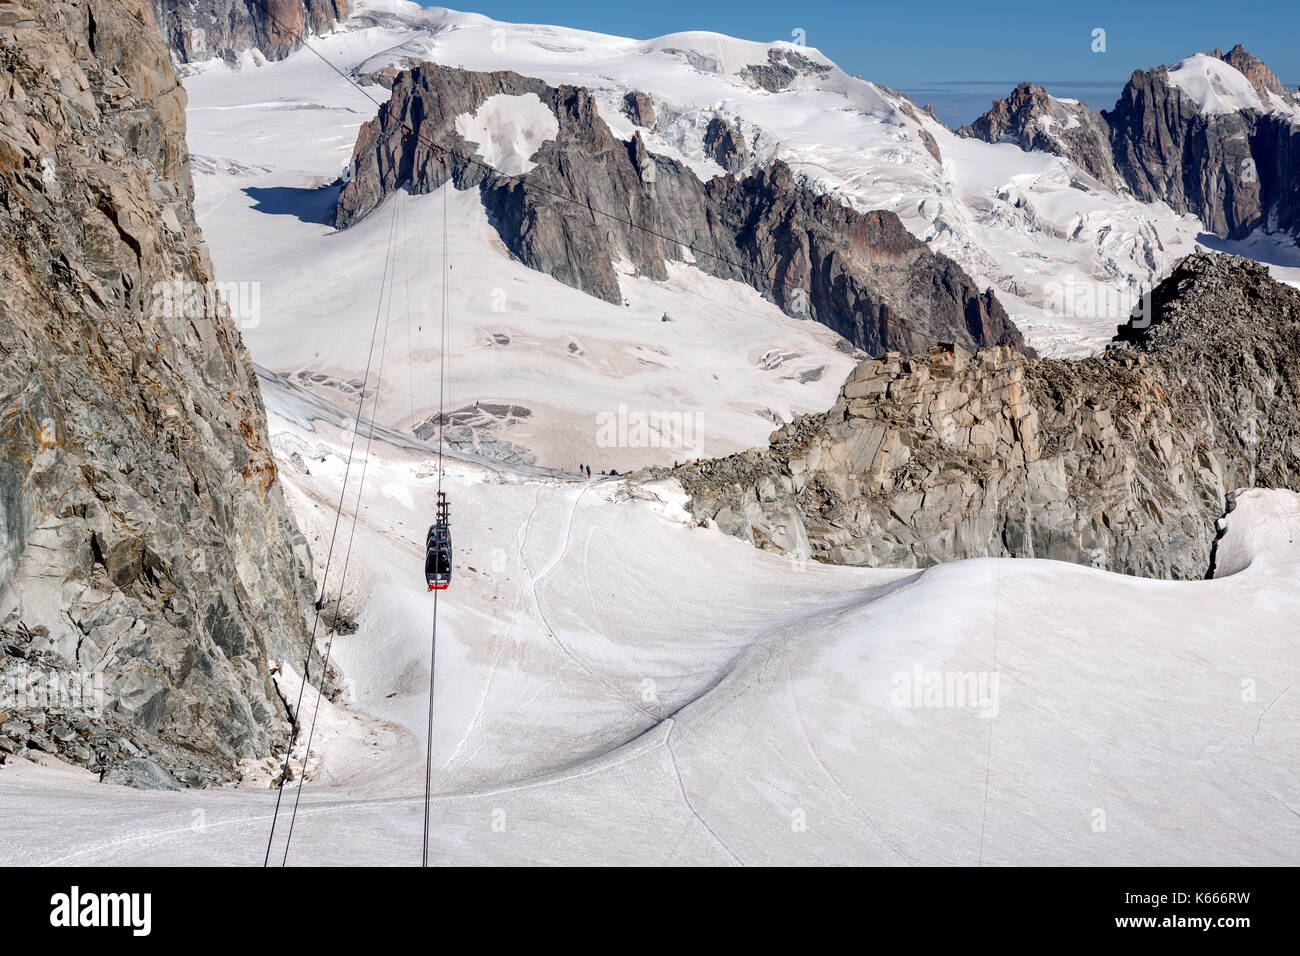 The Panoramic Mont Blanc Cable car from Aiguille du Midi in France on its way to Point Helbronner, Italy Stock Photo